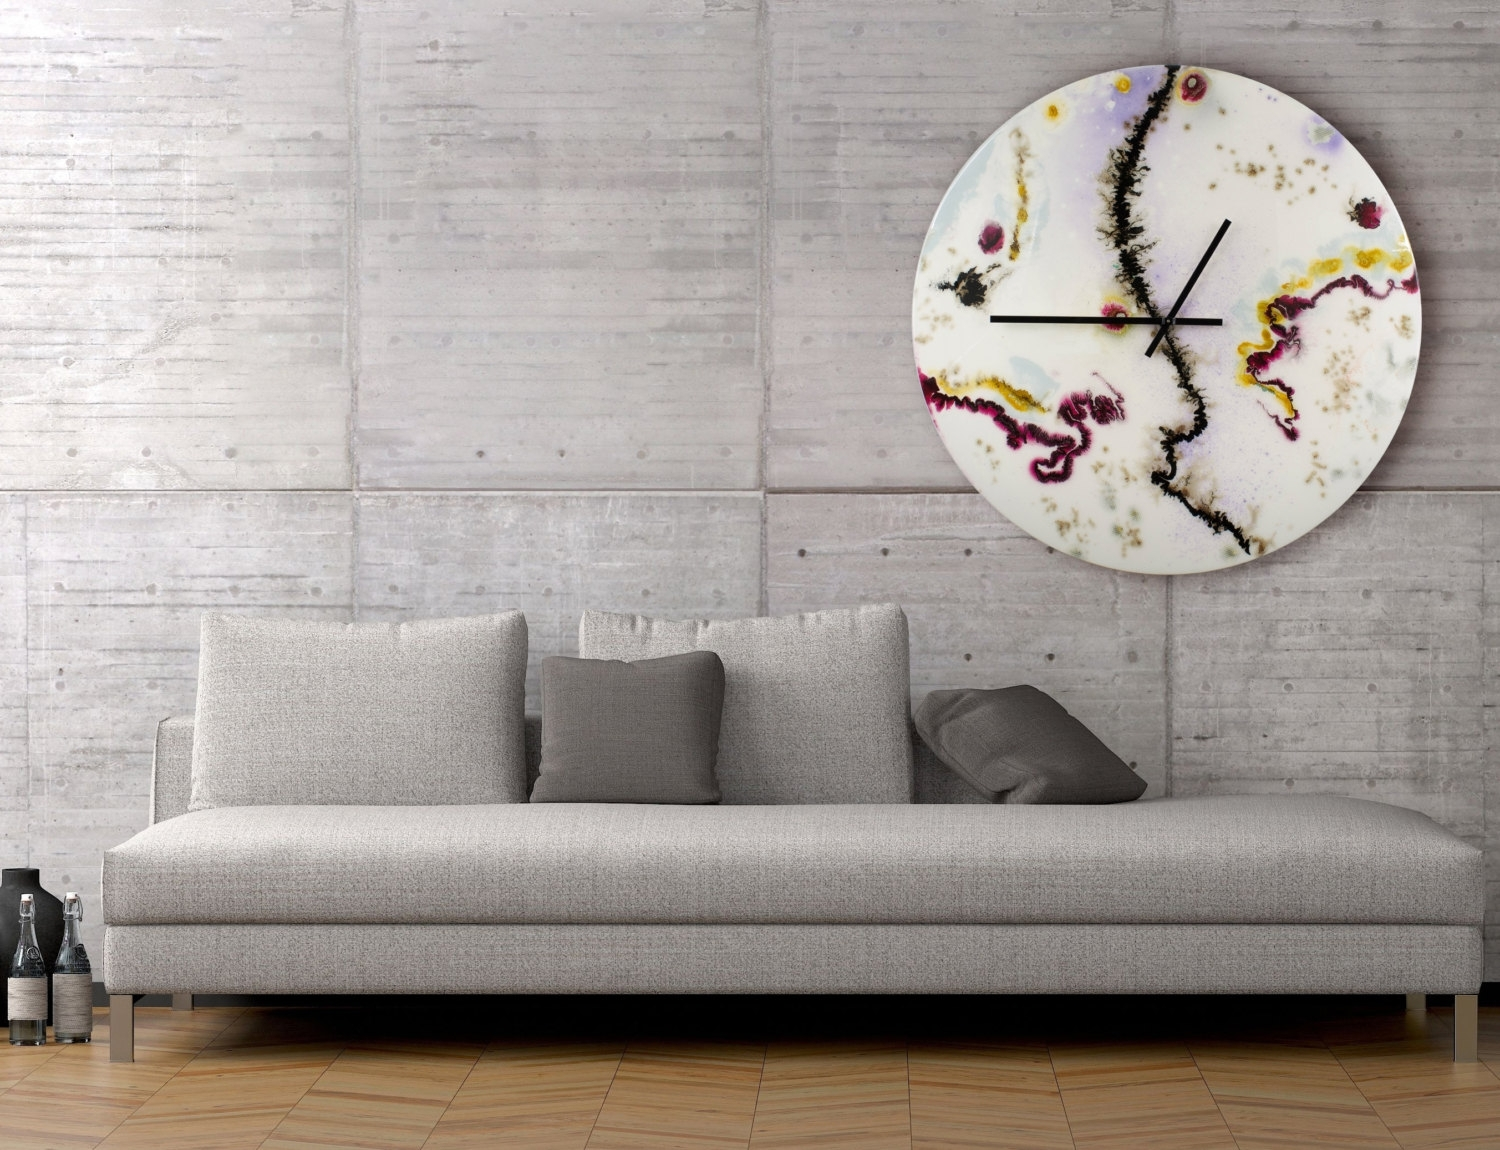 Unusual Wall Murals Photos In] Unique Wall Mural, Unusual Wall Art with regard to Unusual Wall Art (Image 15 of 20)